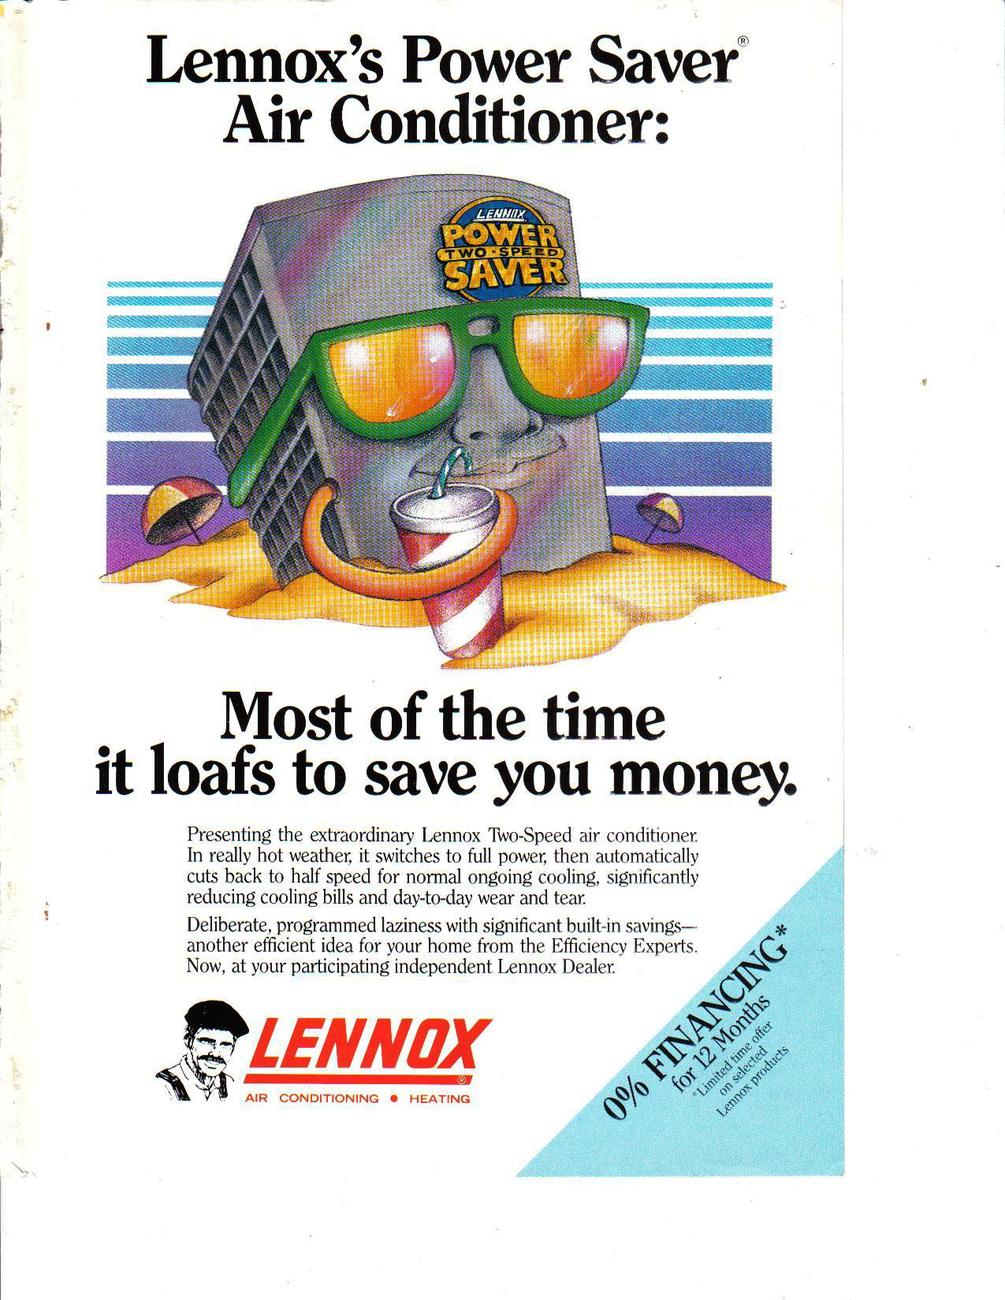 Lennox 1983 Full Page  Print Ad - Most of the time it loafs to save you money.VG